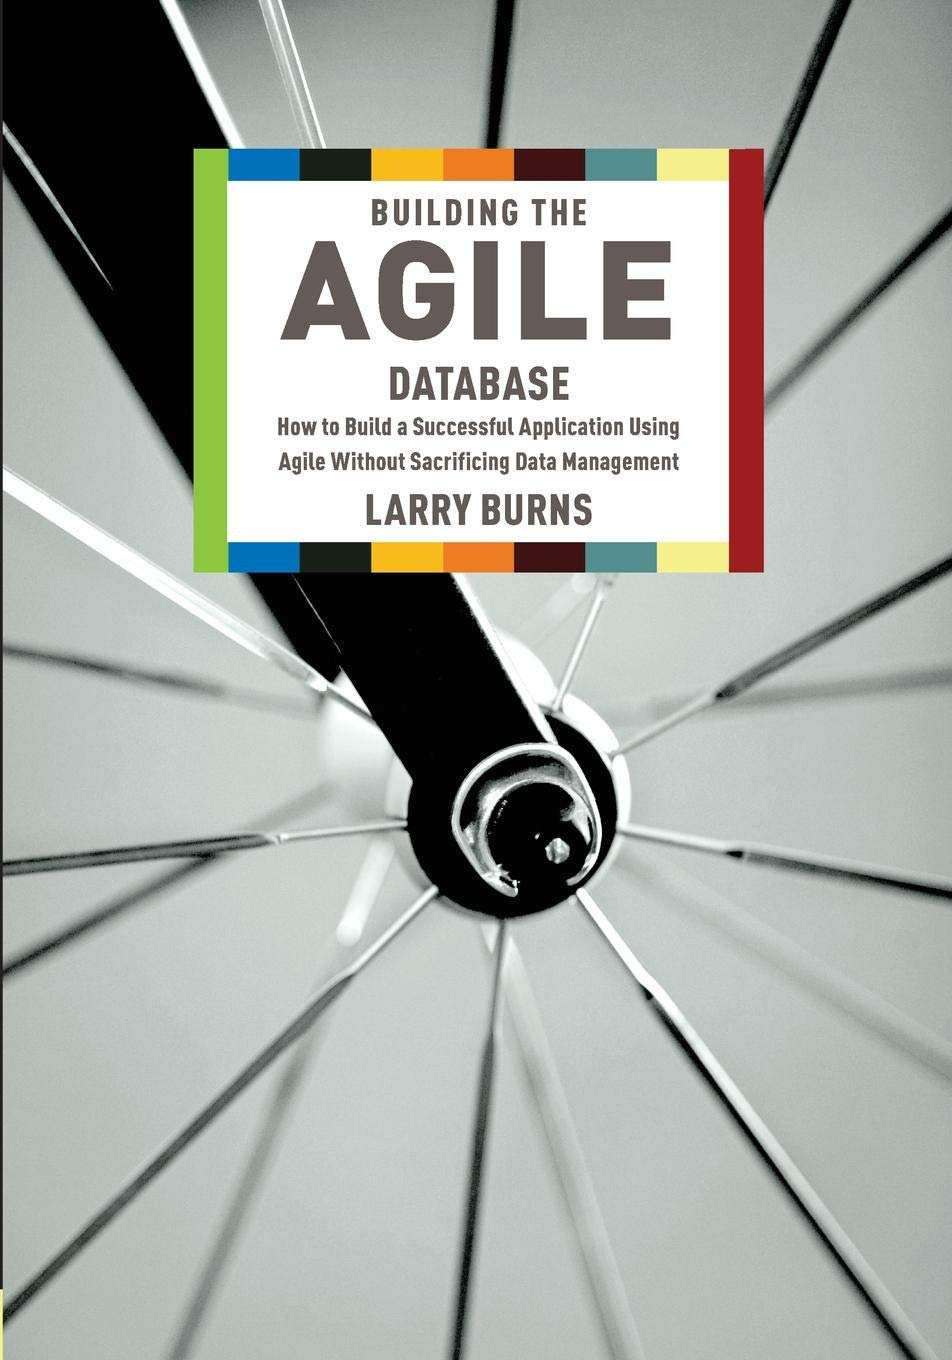 Building the Agile Database: How to Build a Successful Application Using Agile Without Sacrificing Data Management pdf